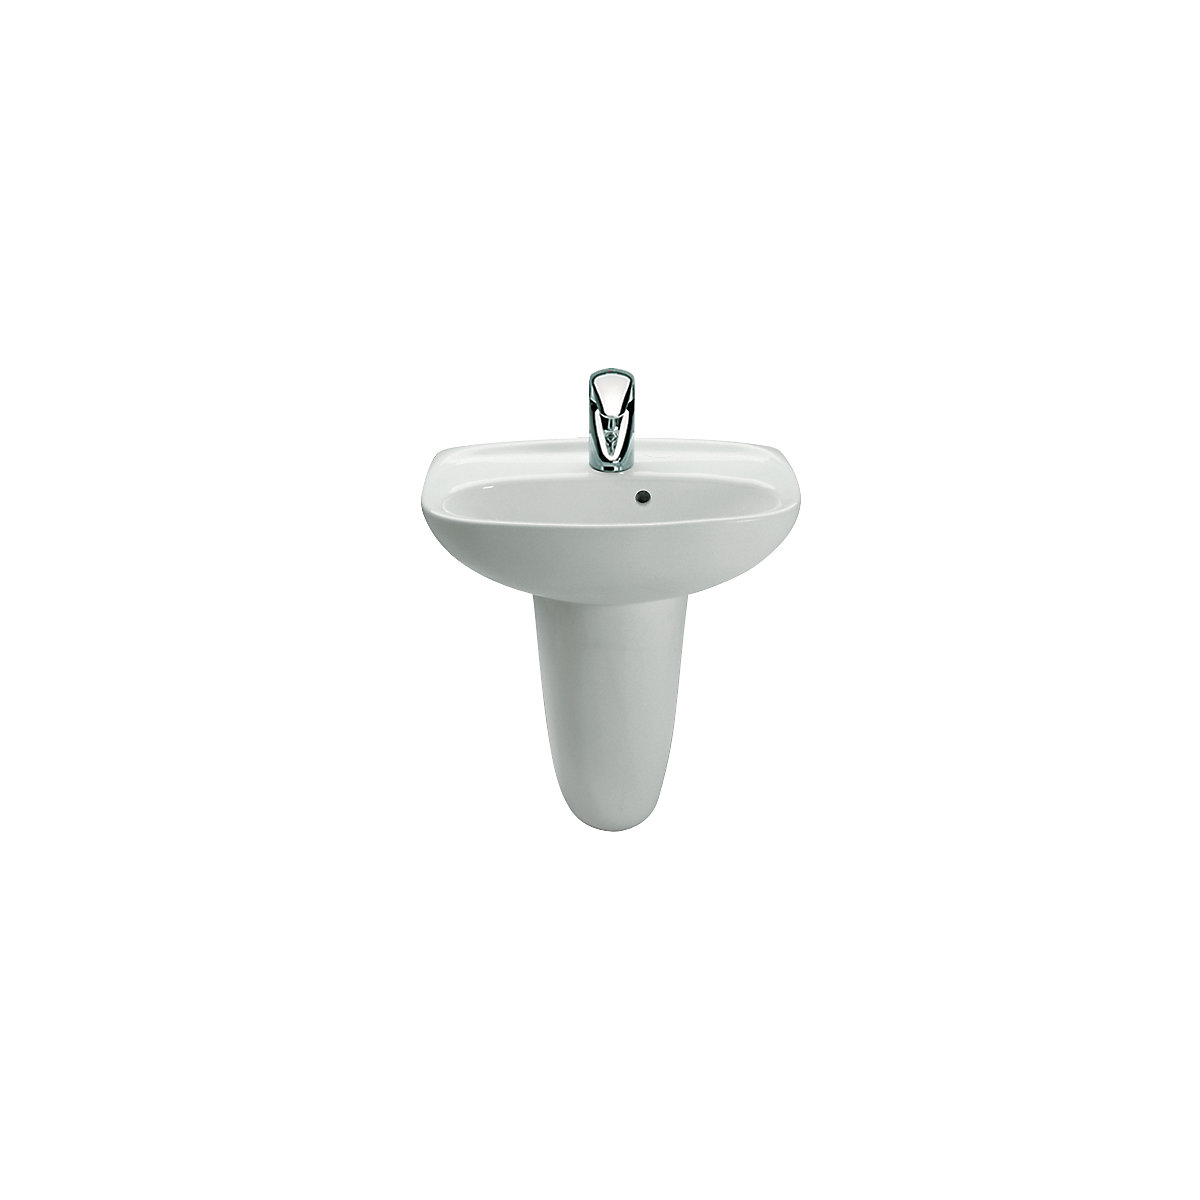 Roca Laura Cloakroom Basin 1 Tap Hole 450mm x 340mm (Basin Only ...